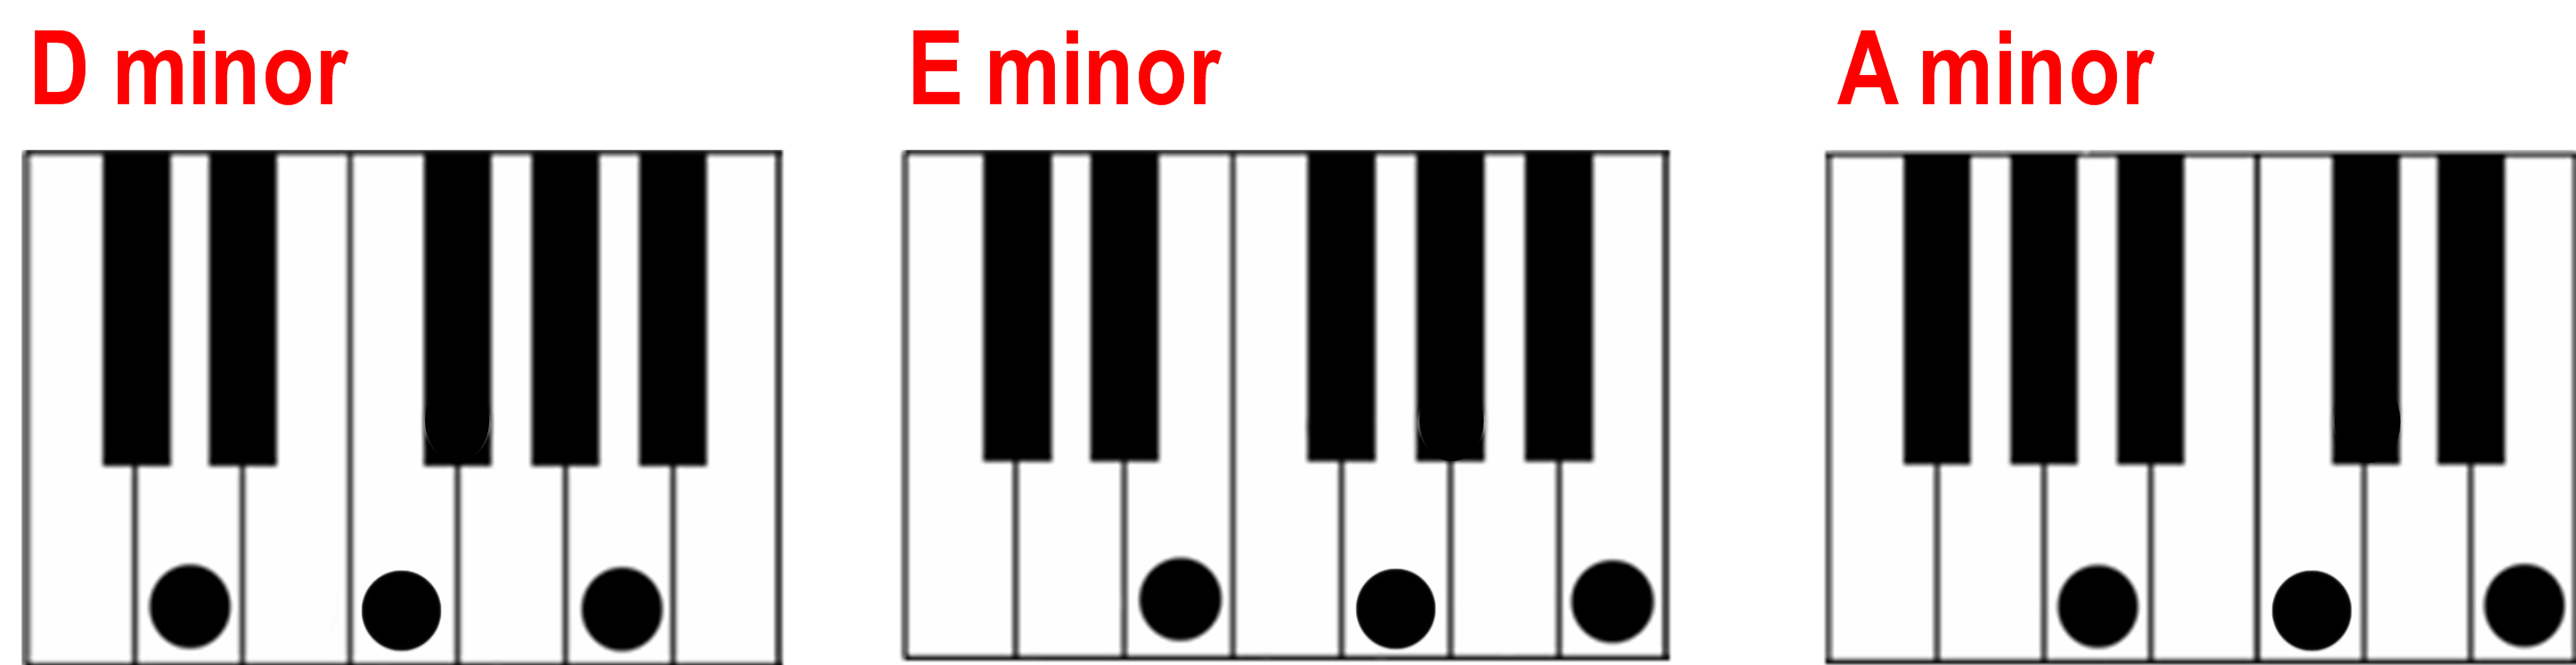 Finding a minor chord on the piano d minor e minor a minor chords hexwebz Gallery